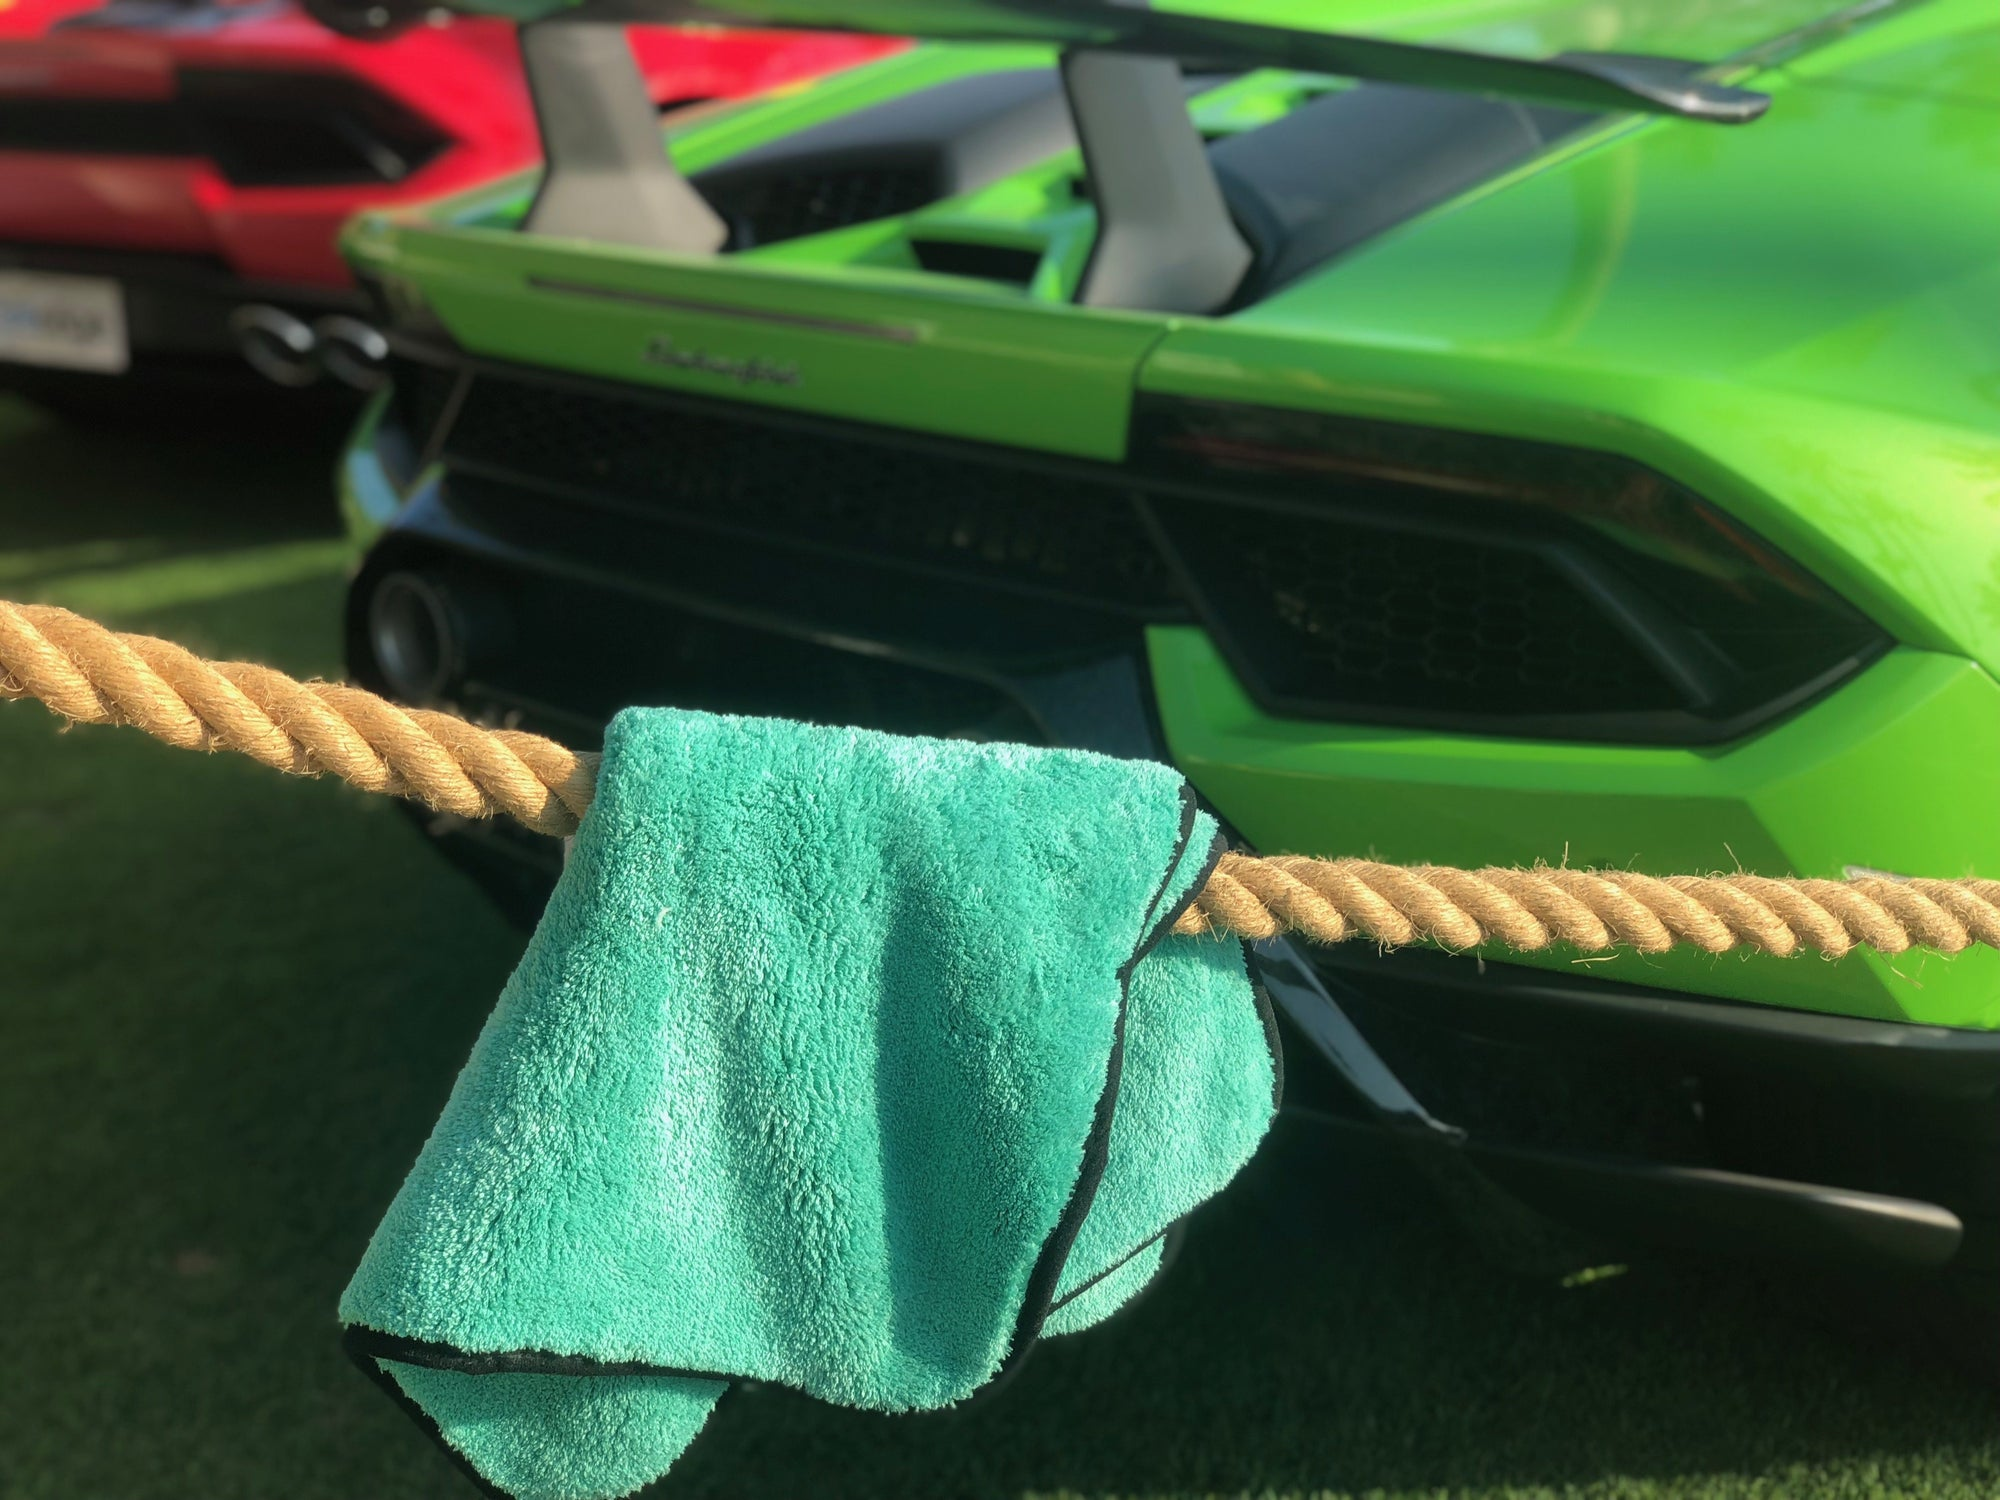 How to properly care for microfiber towels - GT Shine - car drying towel